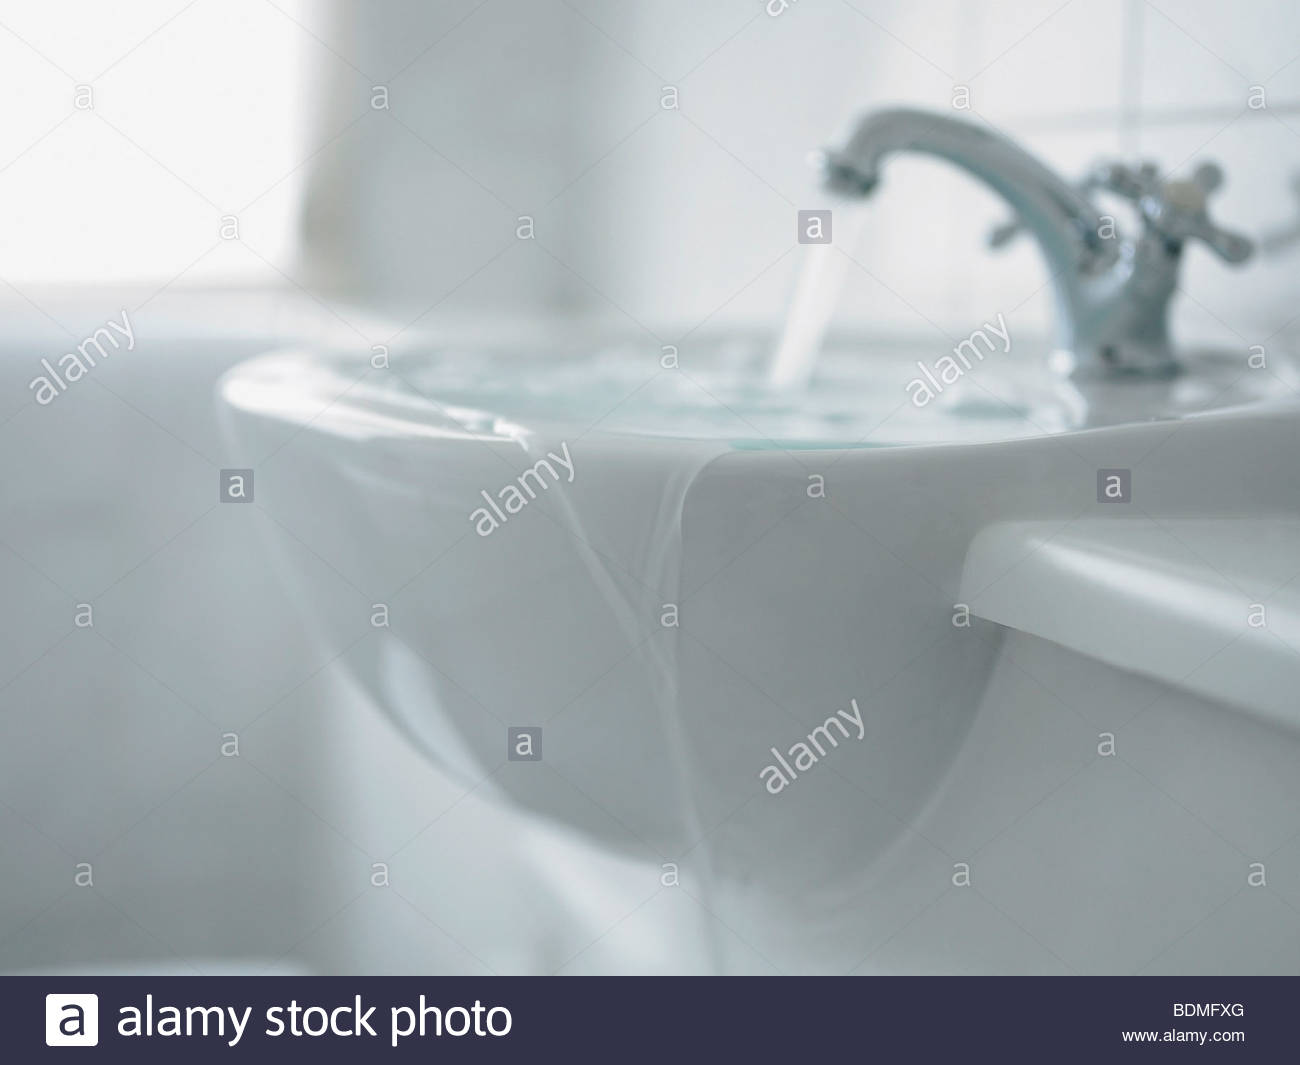 Close up of overflowing bathroom sink - Stock Image